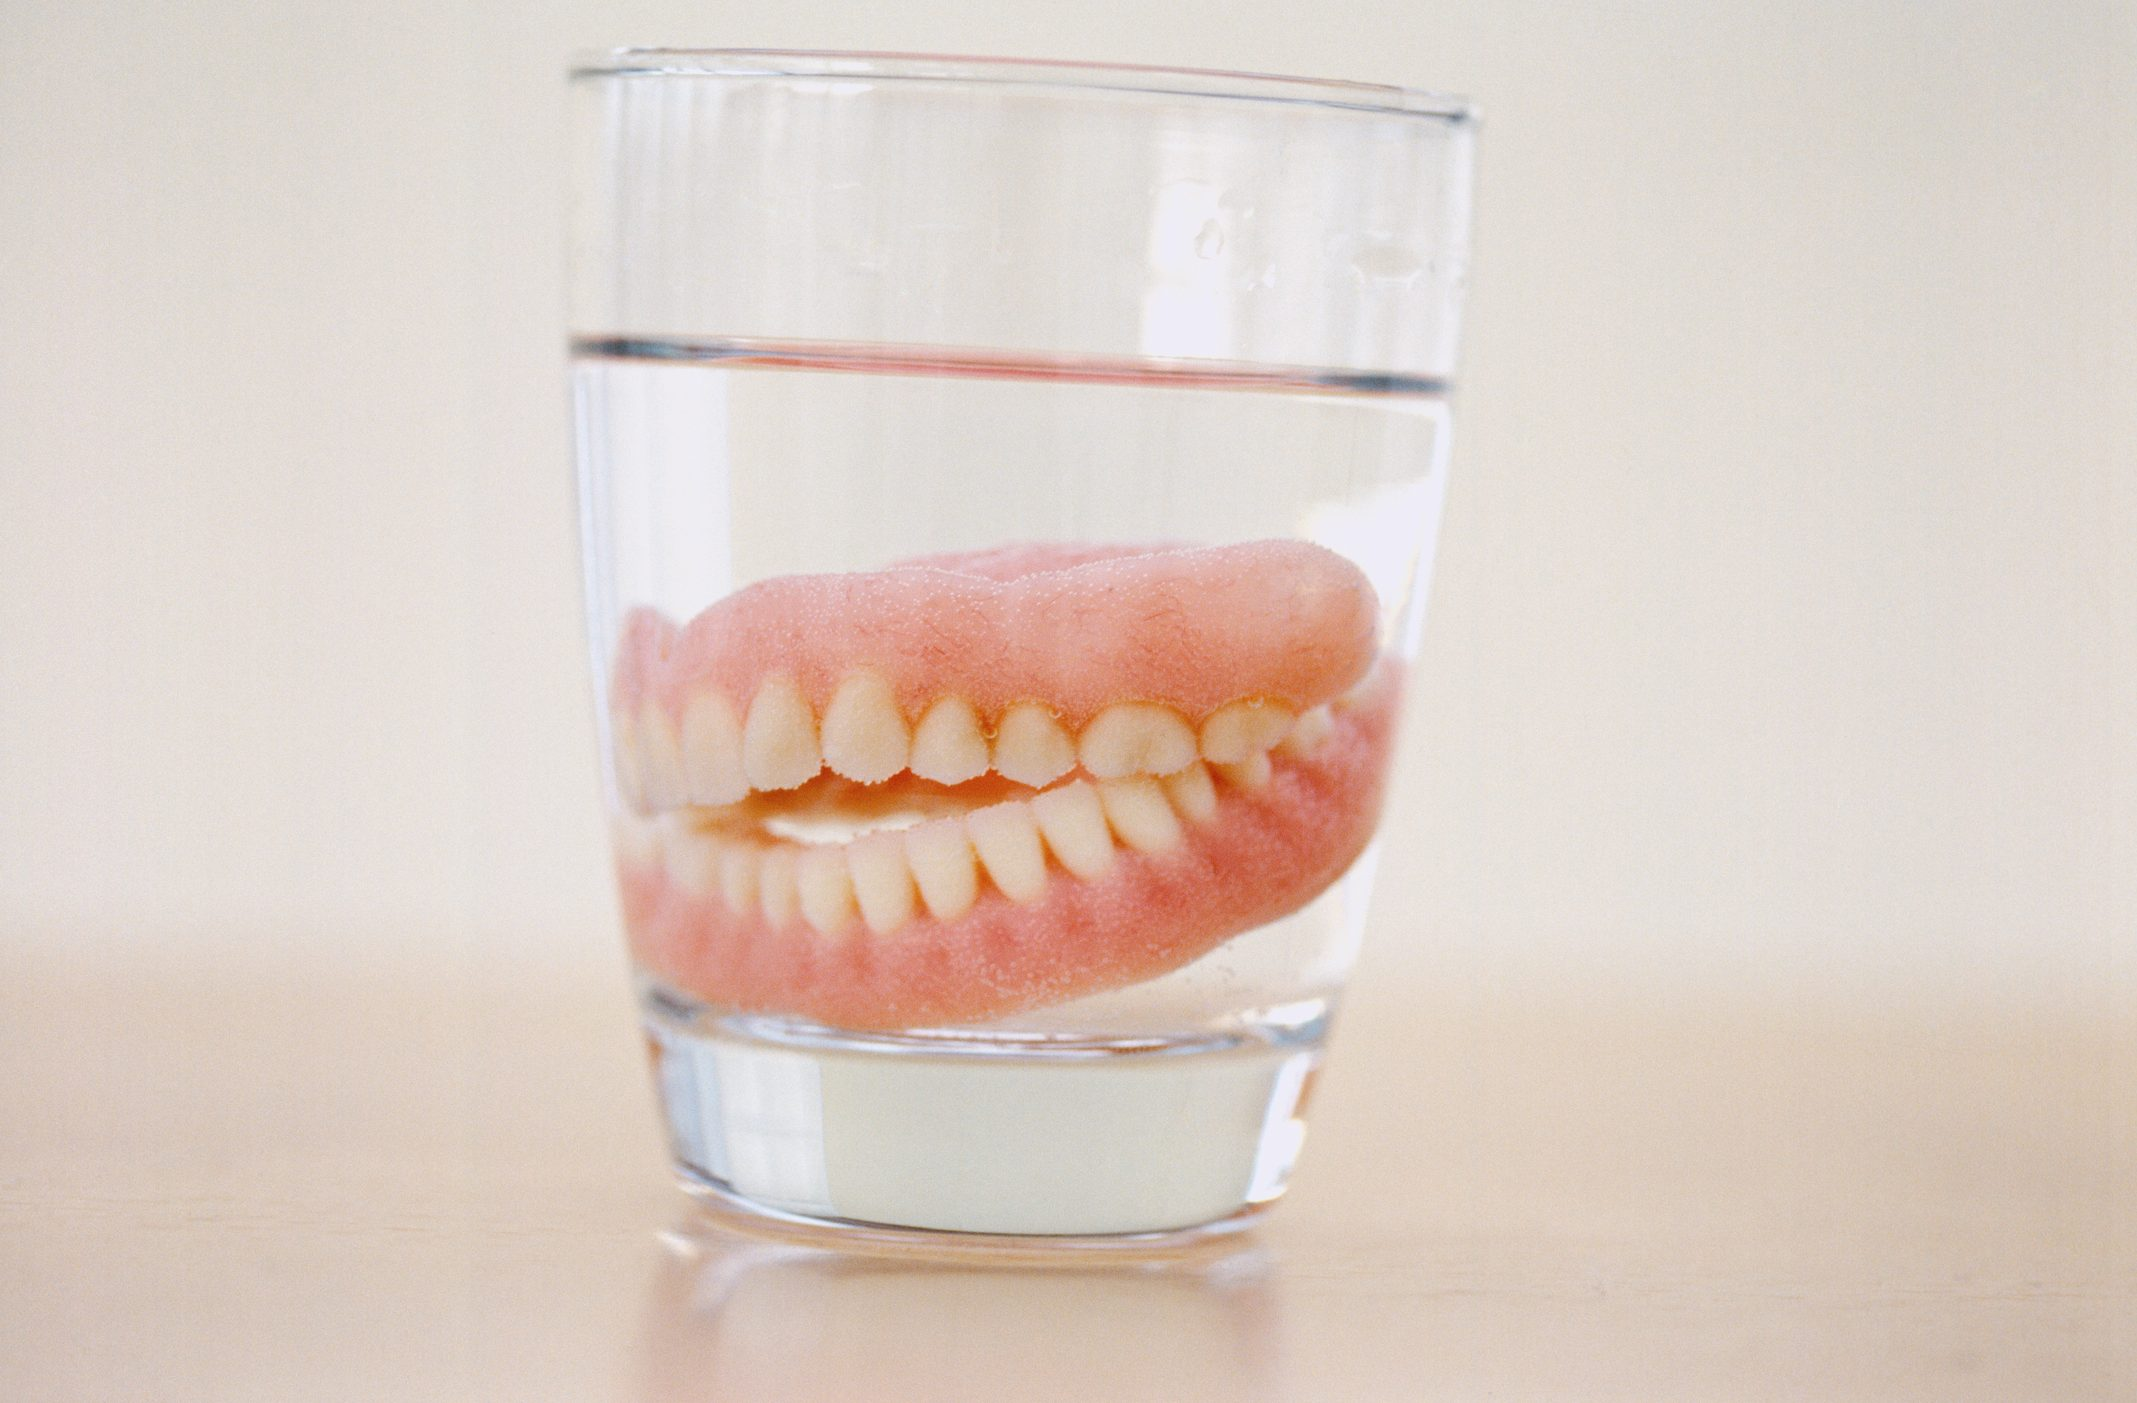 Close-up of a set of dentures in a glass of water